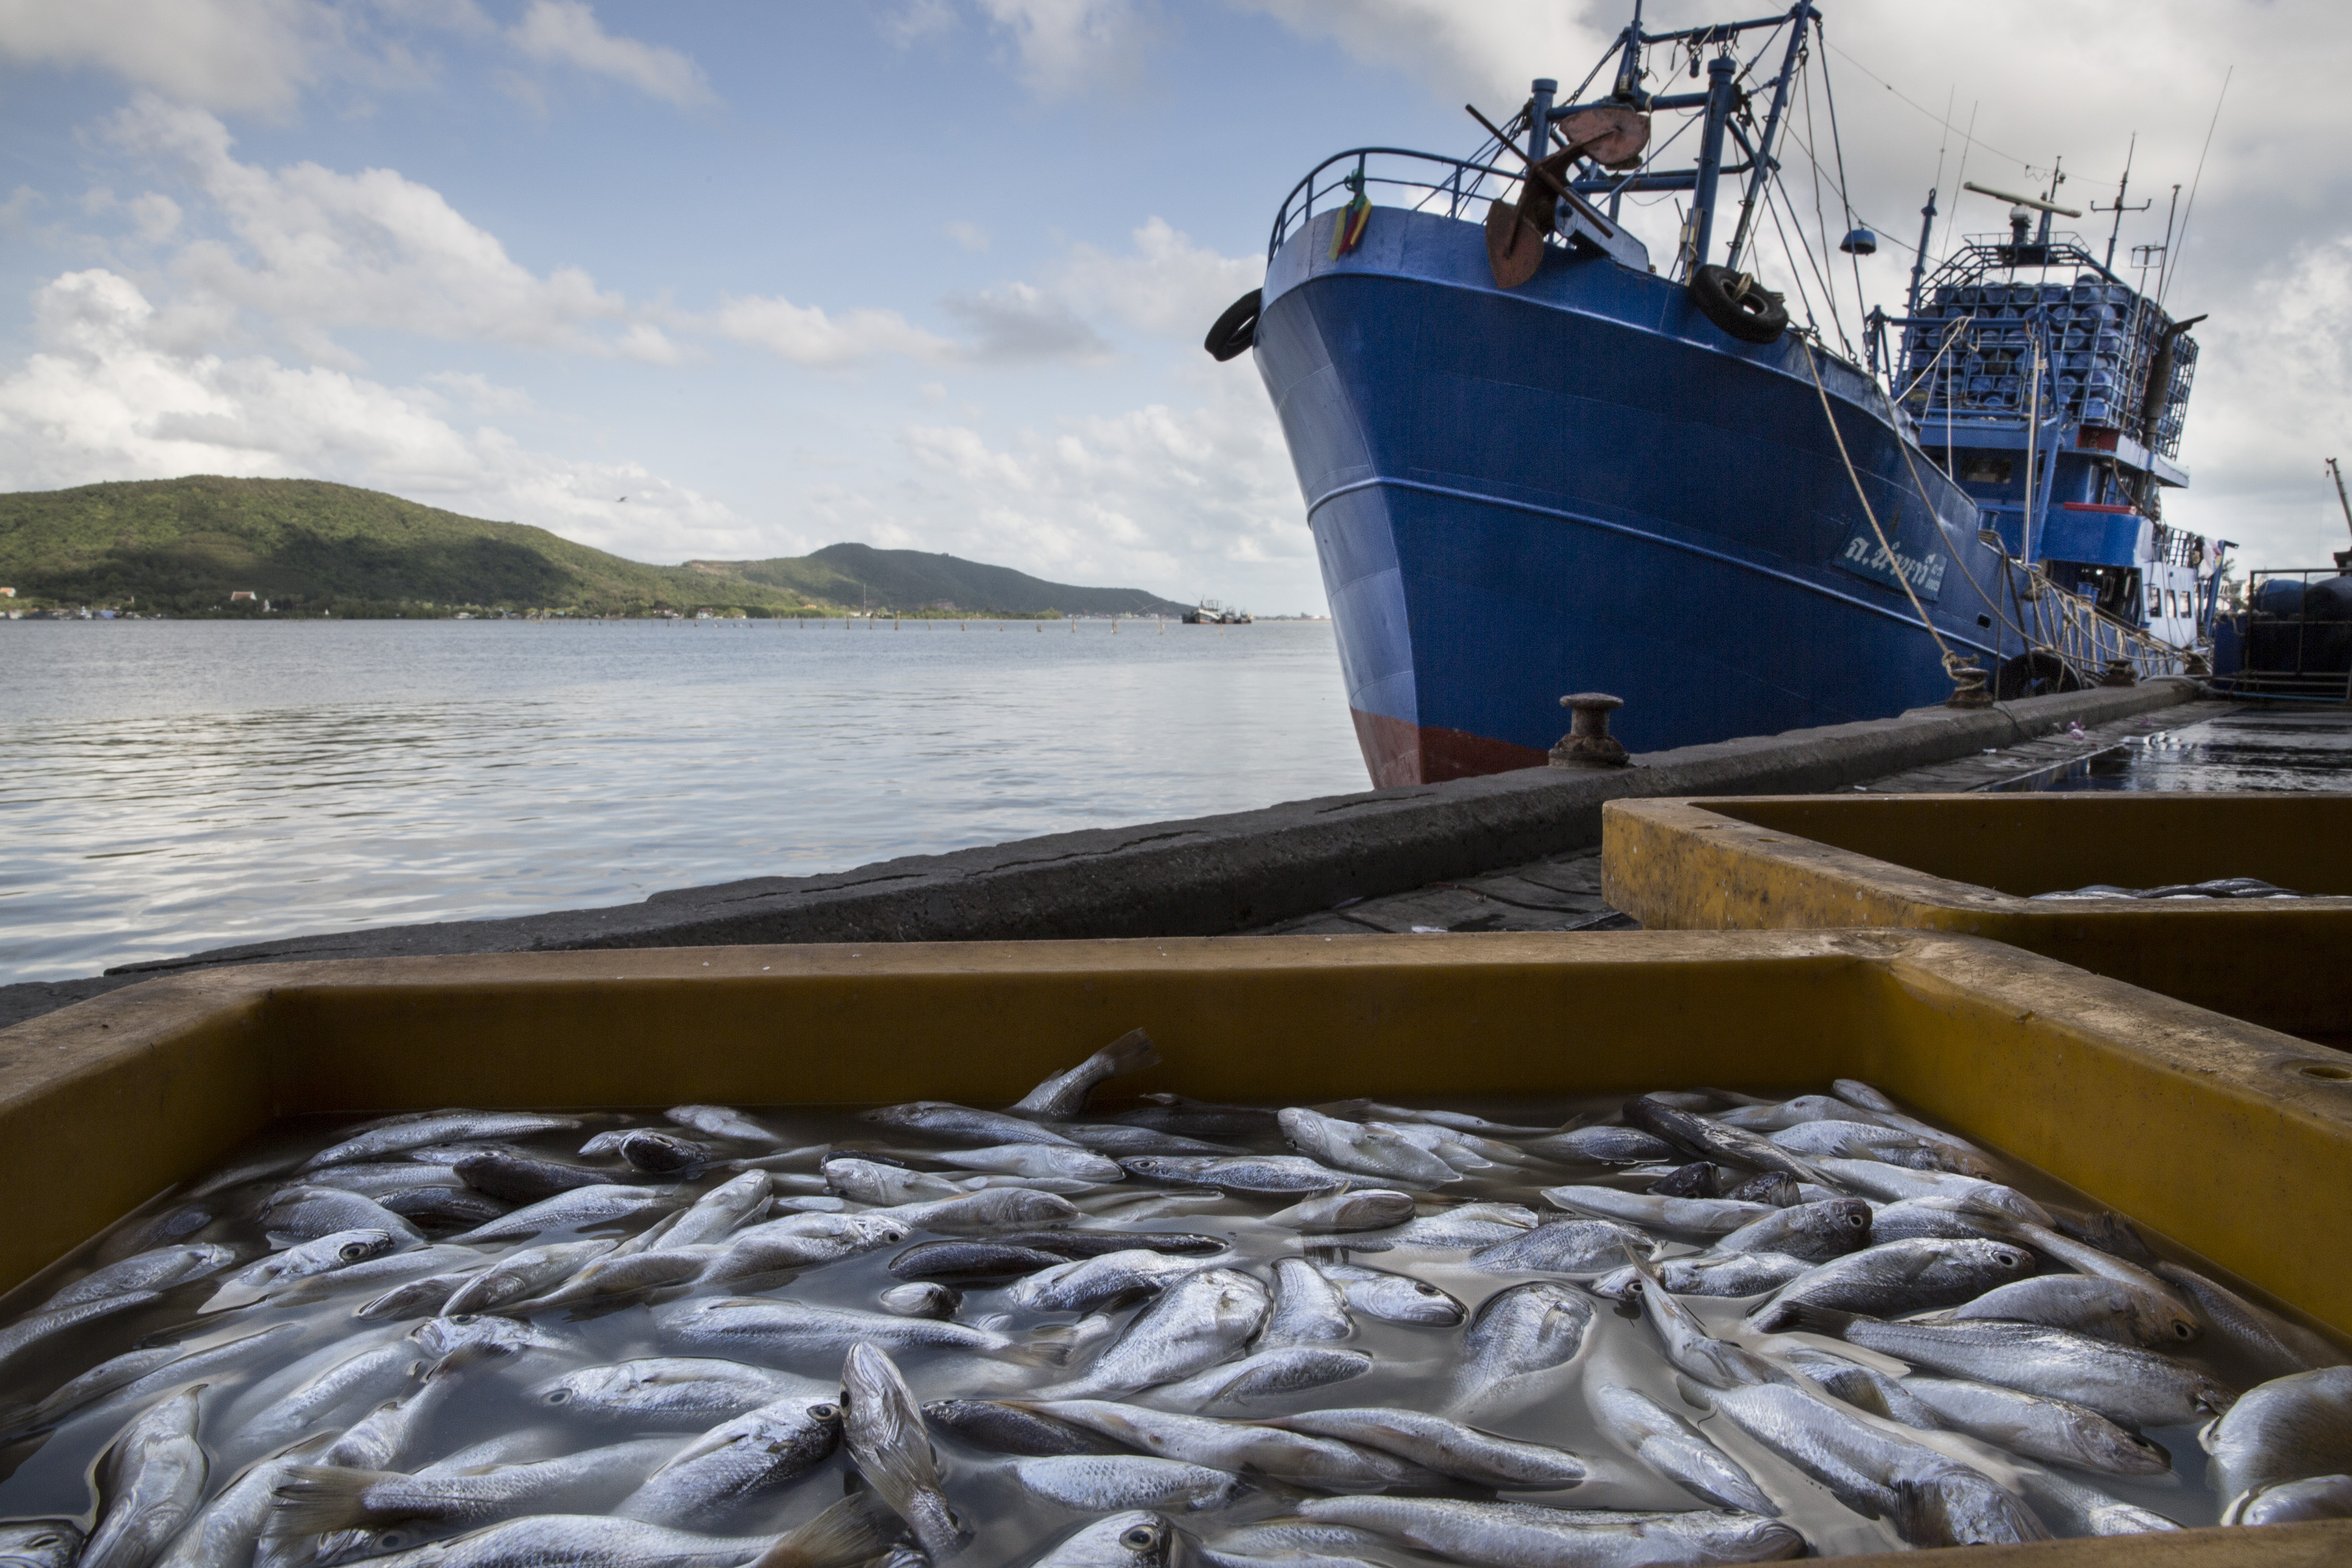 Thailand's Seafood Industry Under Scrutiny